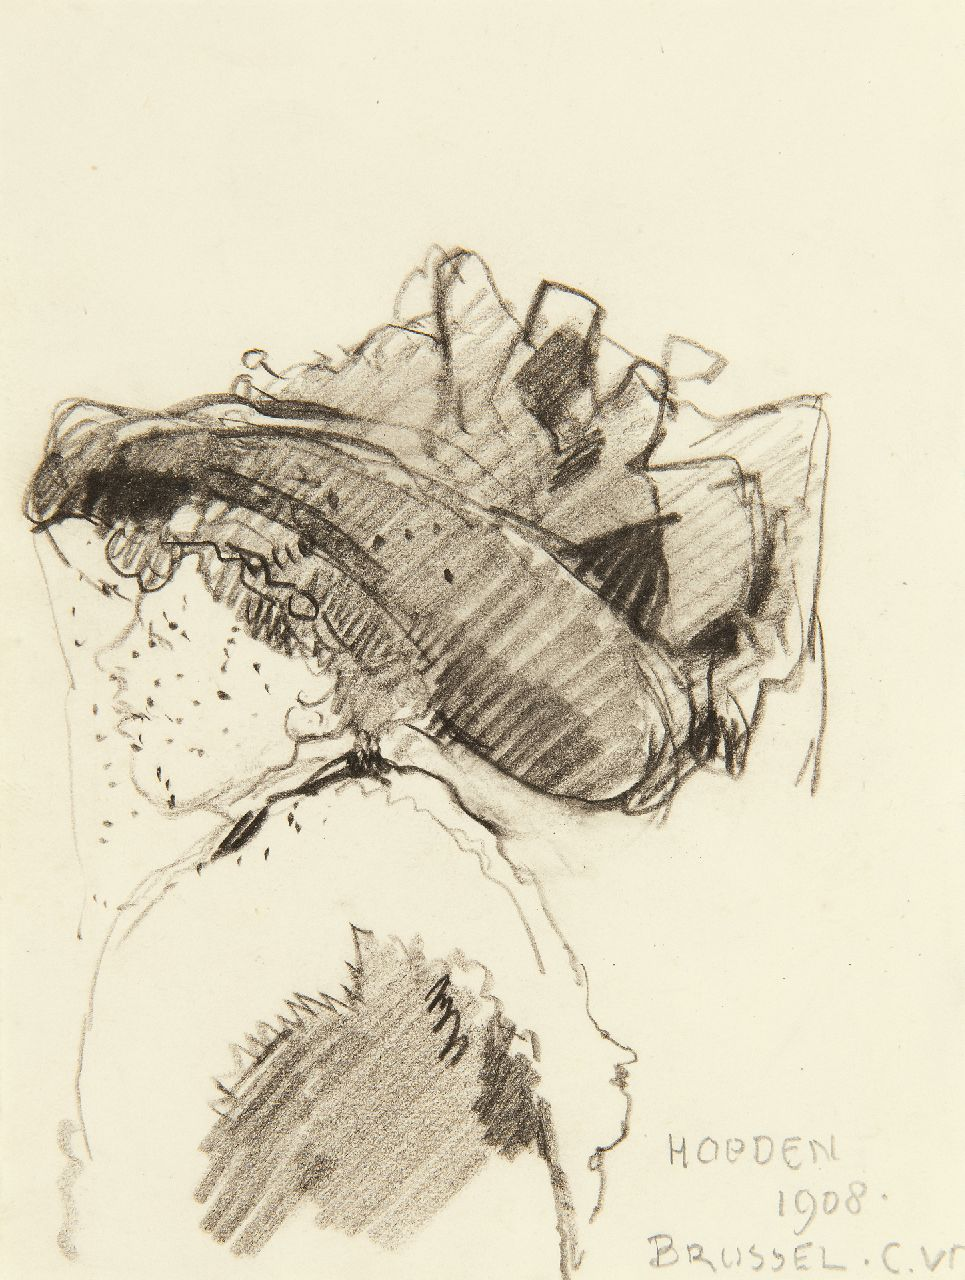 Vreedenburgh C.  | Cornelis Vreedenburgh | Watercolours and drawings offered for sale | The latest hat fashion in Brussels, 1908, black chalk on paper 13.2 x 10.2 cm, signed l.r. with initials and dated 1908